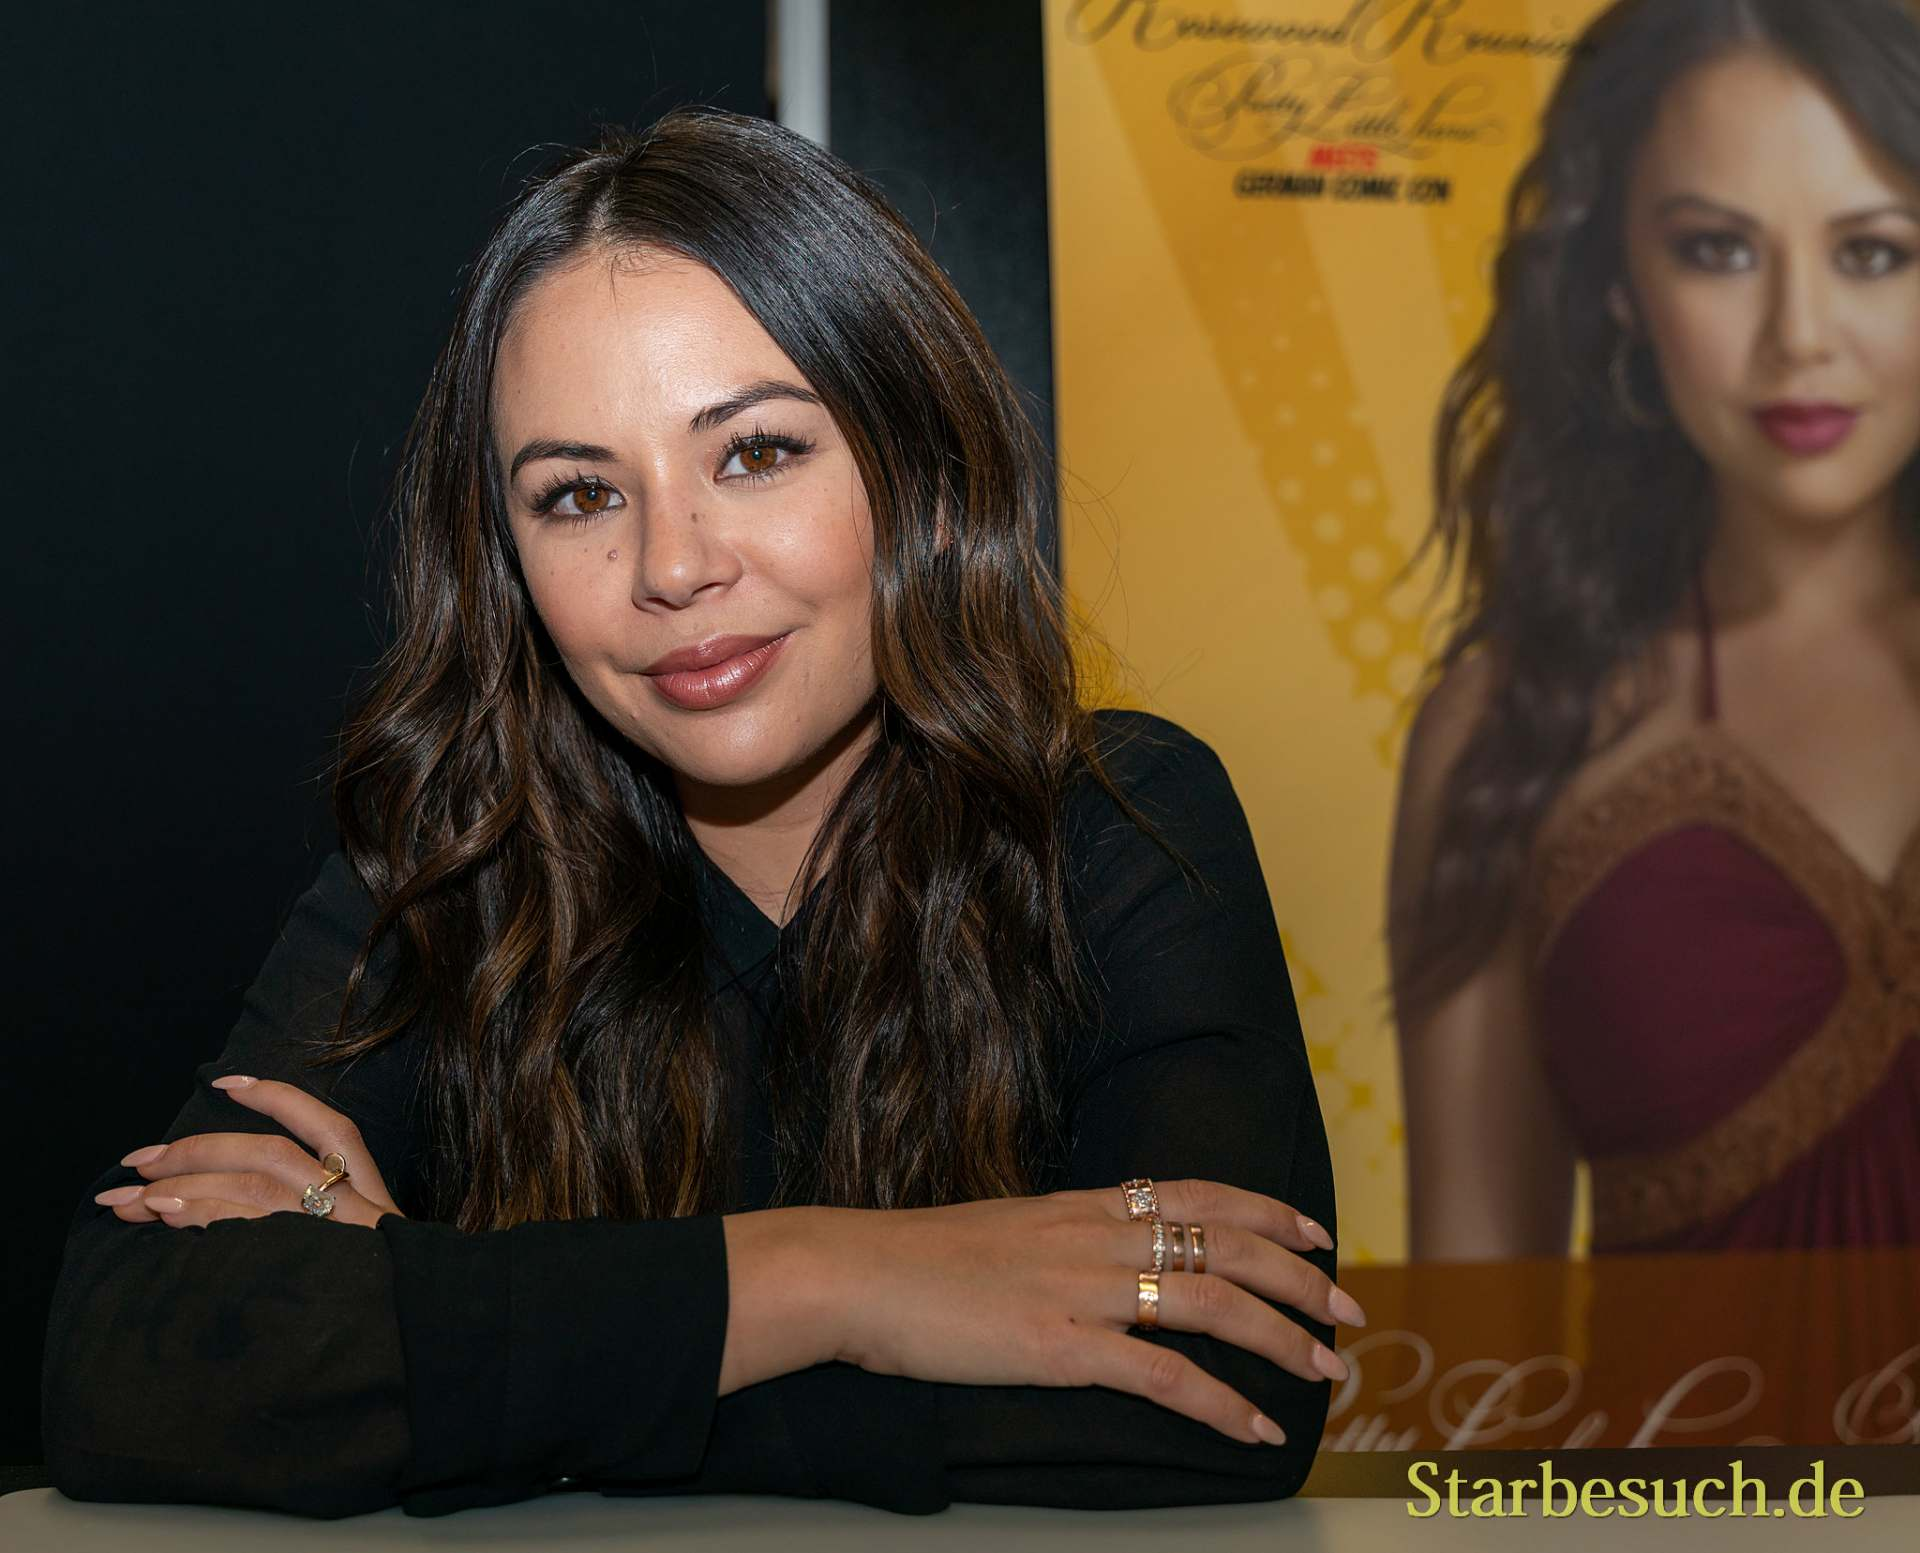 DORTMUND, GERMANY - December 8th 2019: Janel Parrish at German Comic Con Dortmund